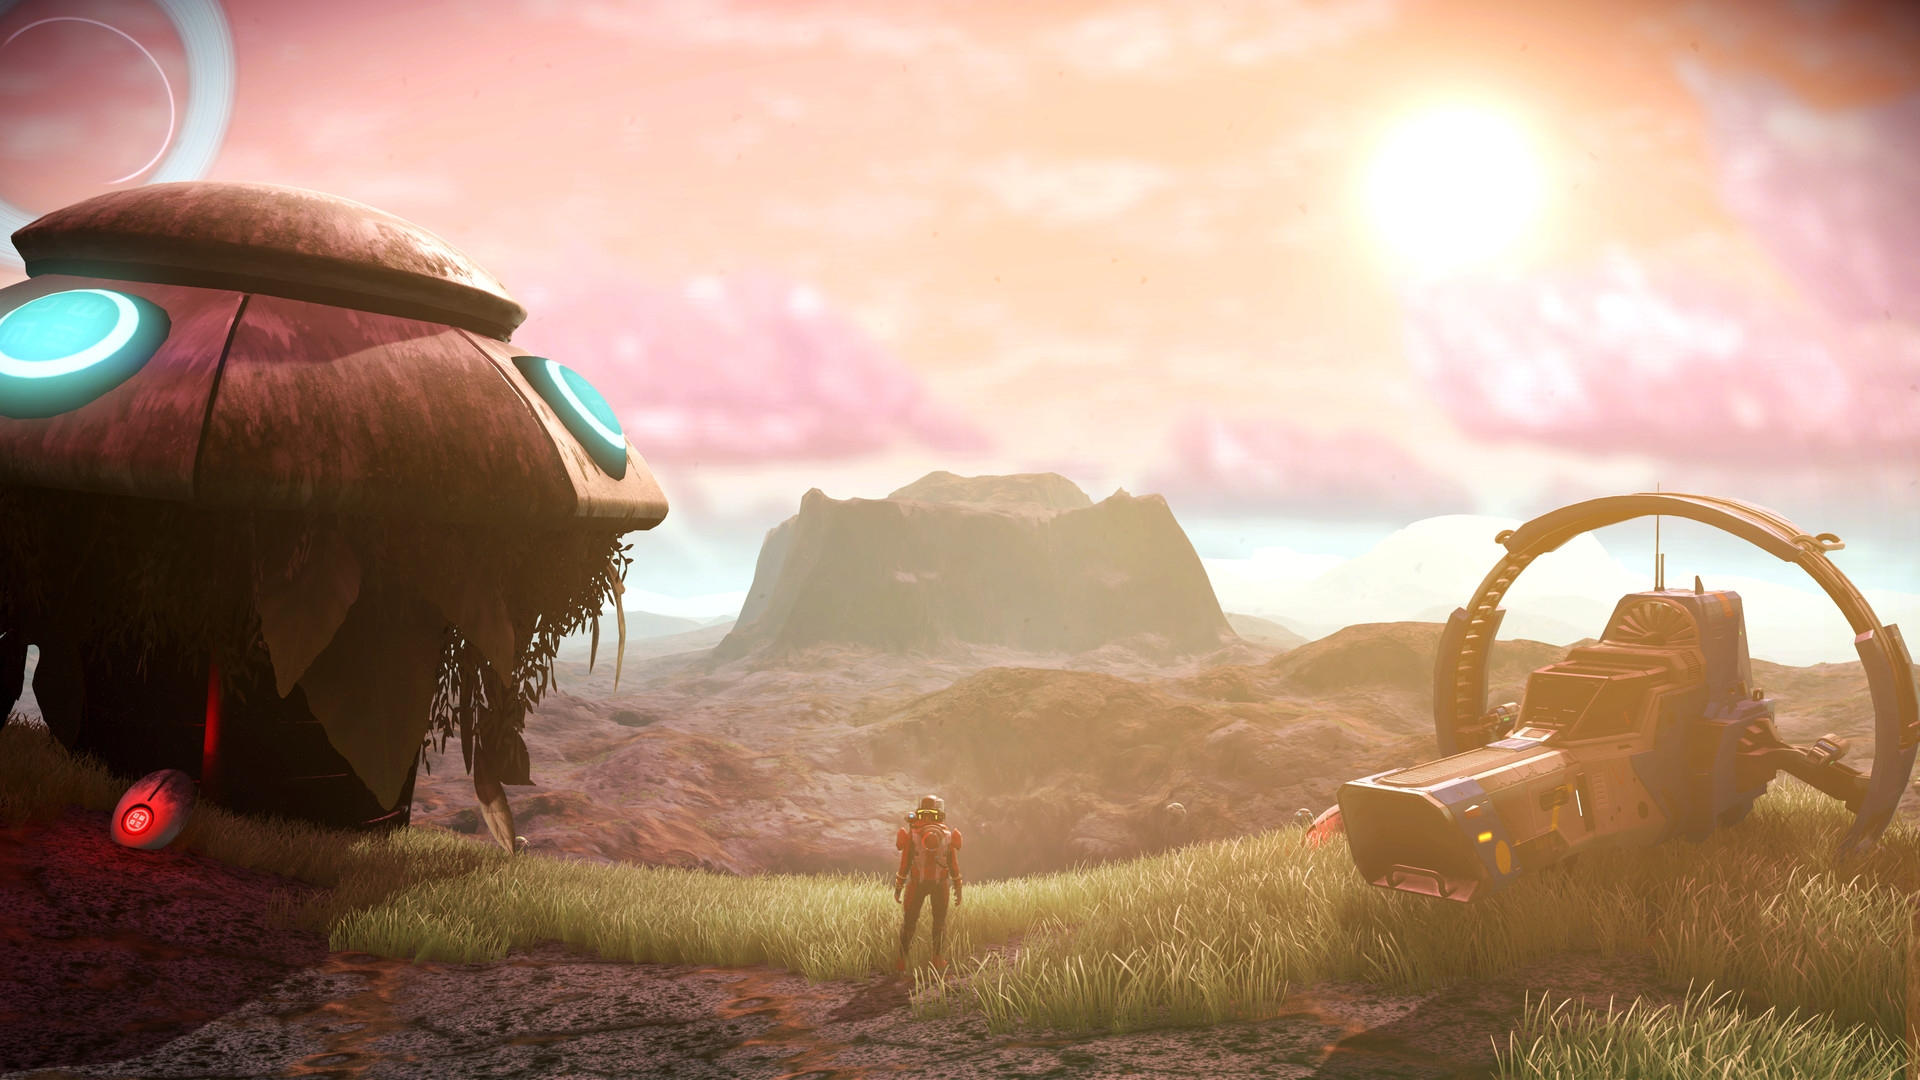 As lonely as all No Man's Sky scenes should be